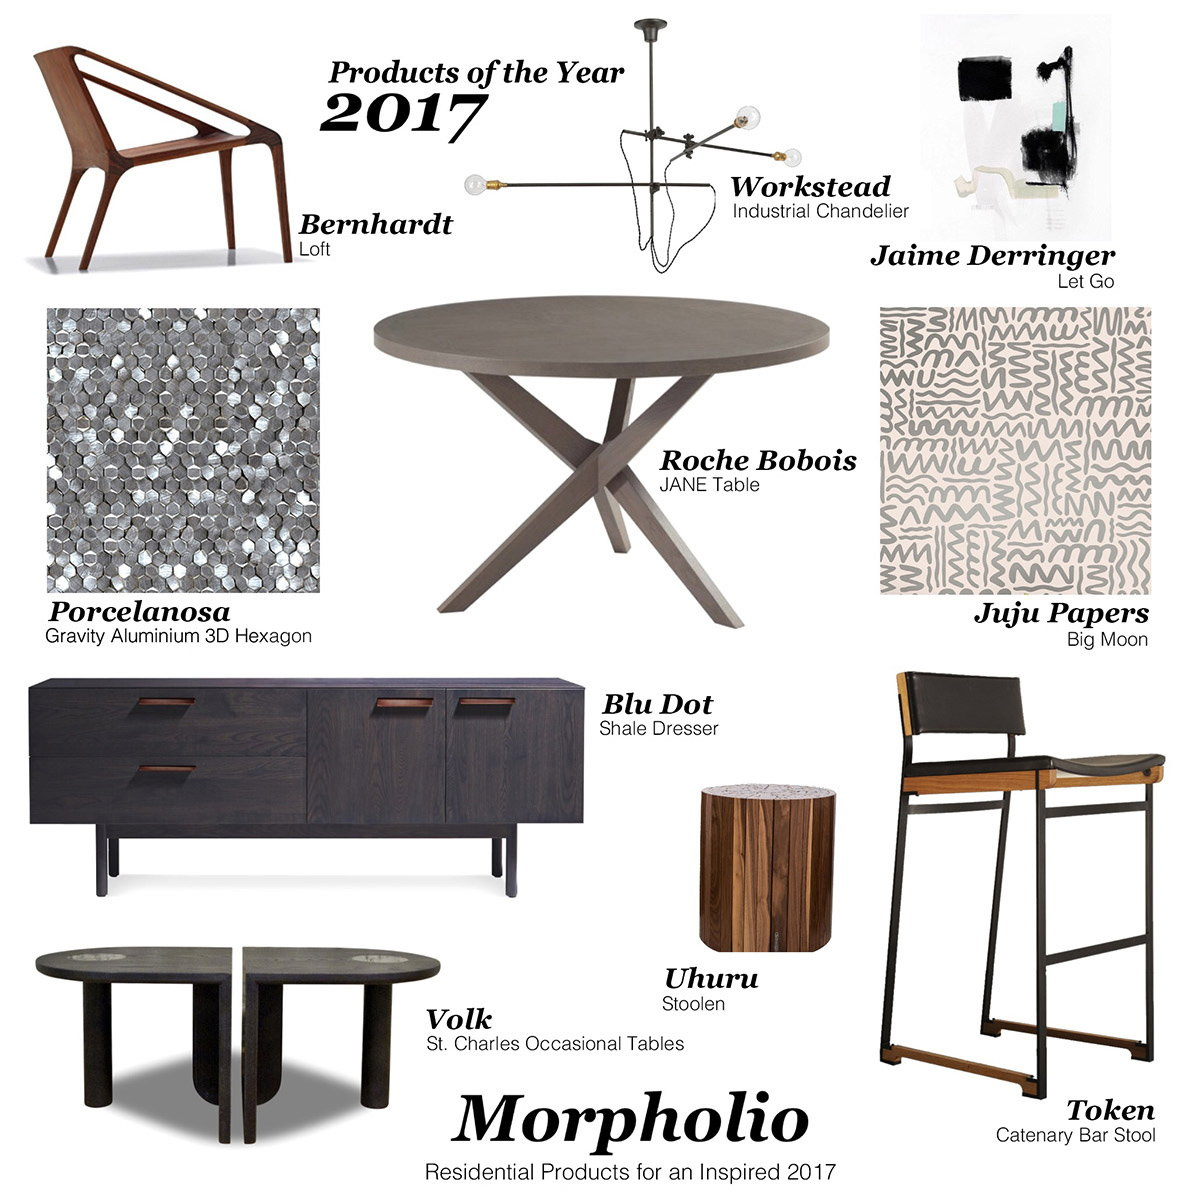 Residential Products of the Year 2017